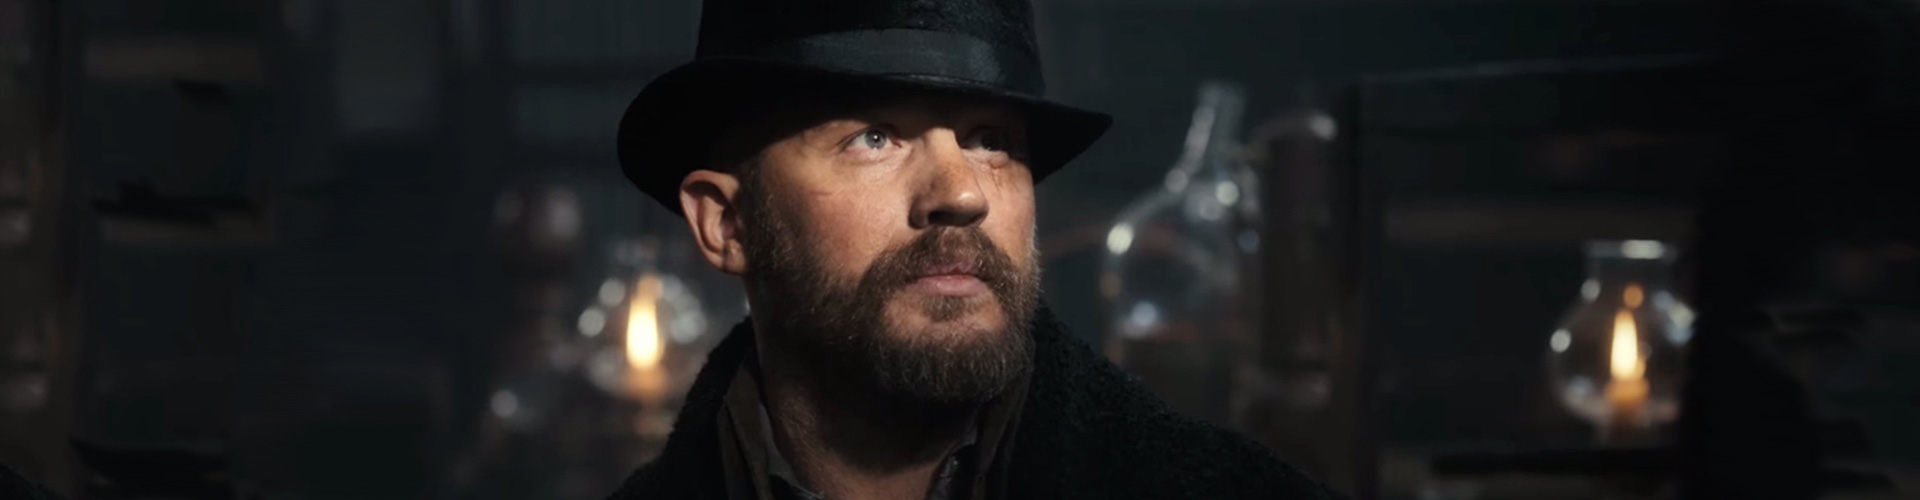 tom-hardy-header.jpg